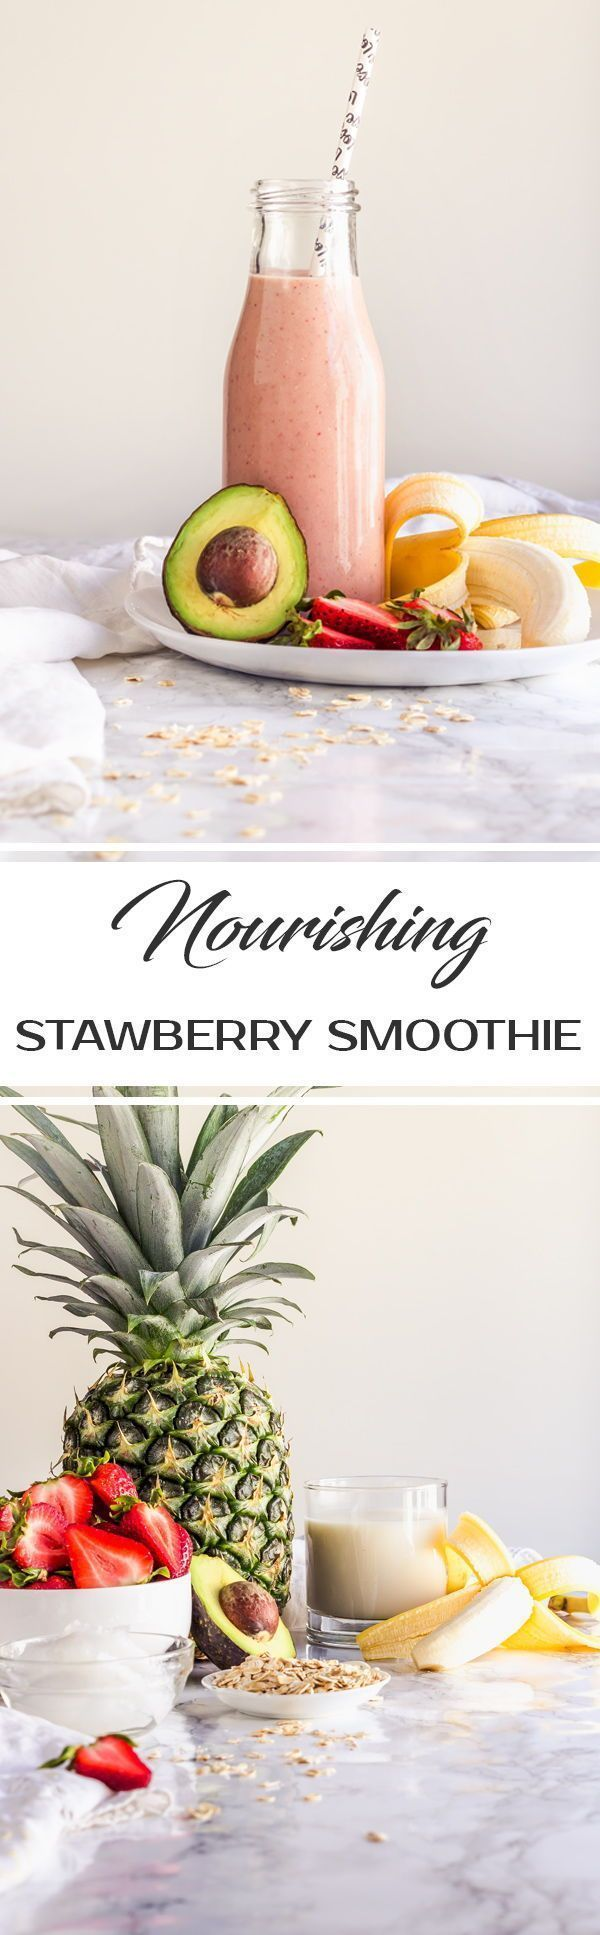 Strawberry banana smoothie recipe. This nourishing Strawberry smoothie recipe is...   - Smoothie Recipes - #banana #Nourishing #Recipe #Recipes #smoothie #strawberry #strawberrybananasmoothie Strawberry banana smoothie recipe. This nourishing Strawberry smoothie recipe is...   - Smoothie Recipes - #banana #Nourishing #Recipe #Recipes #smoothie #strawberry #healthystrawberrybananasmoothie Strawberry banana smoothie recipe. This nourishing Strawberry smoothie recipe is...   - Smoothie Recipes - #b #strawberrybananasmoothie